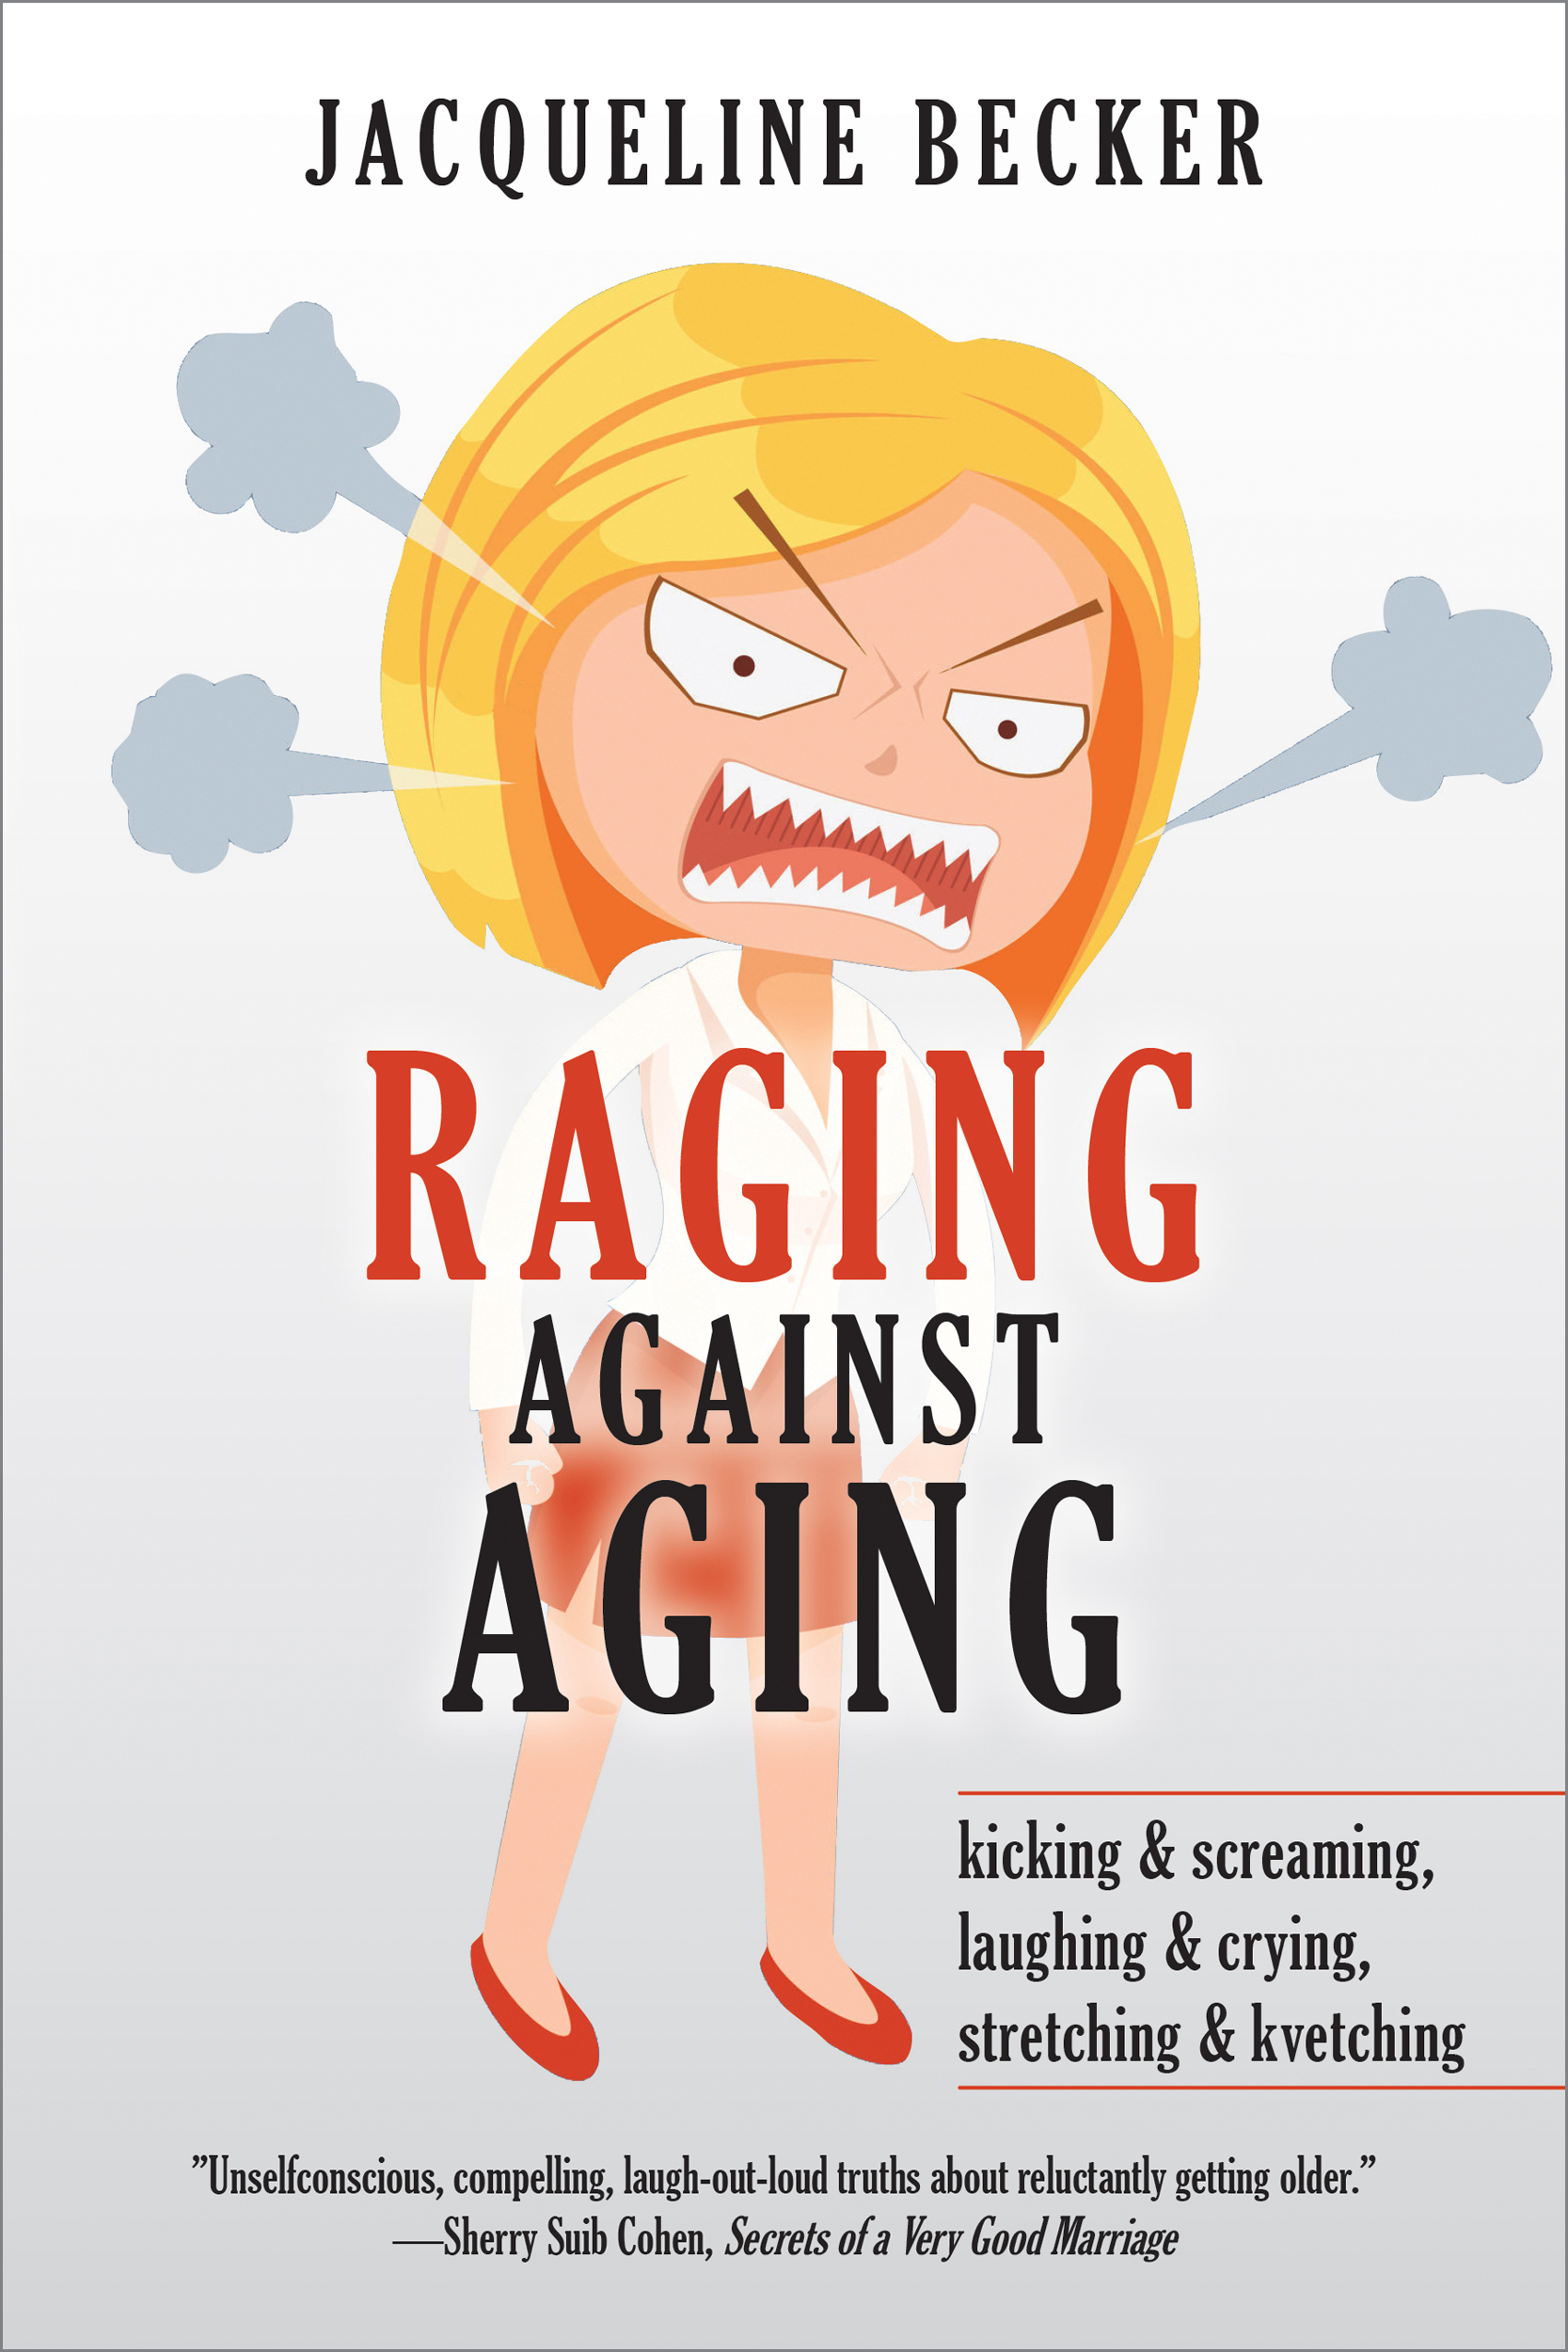 RAGING AGAINST AGING